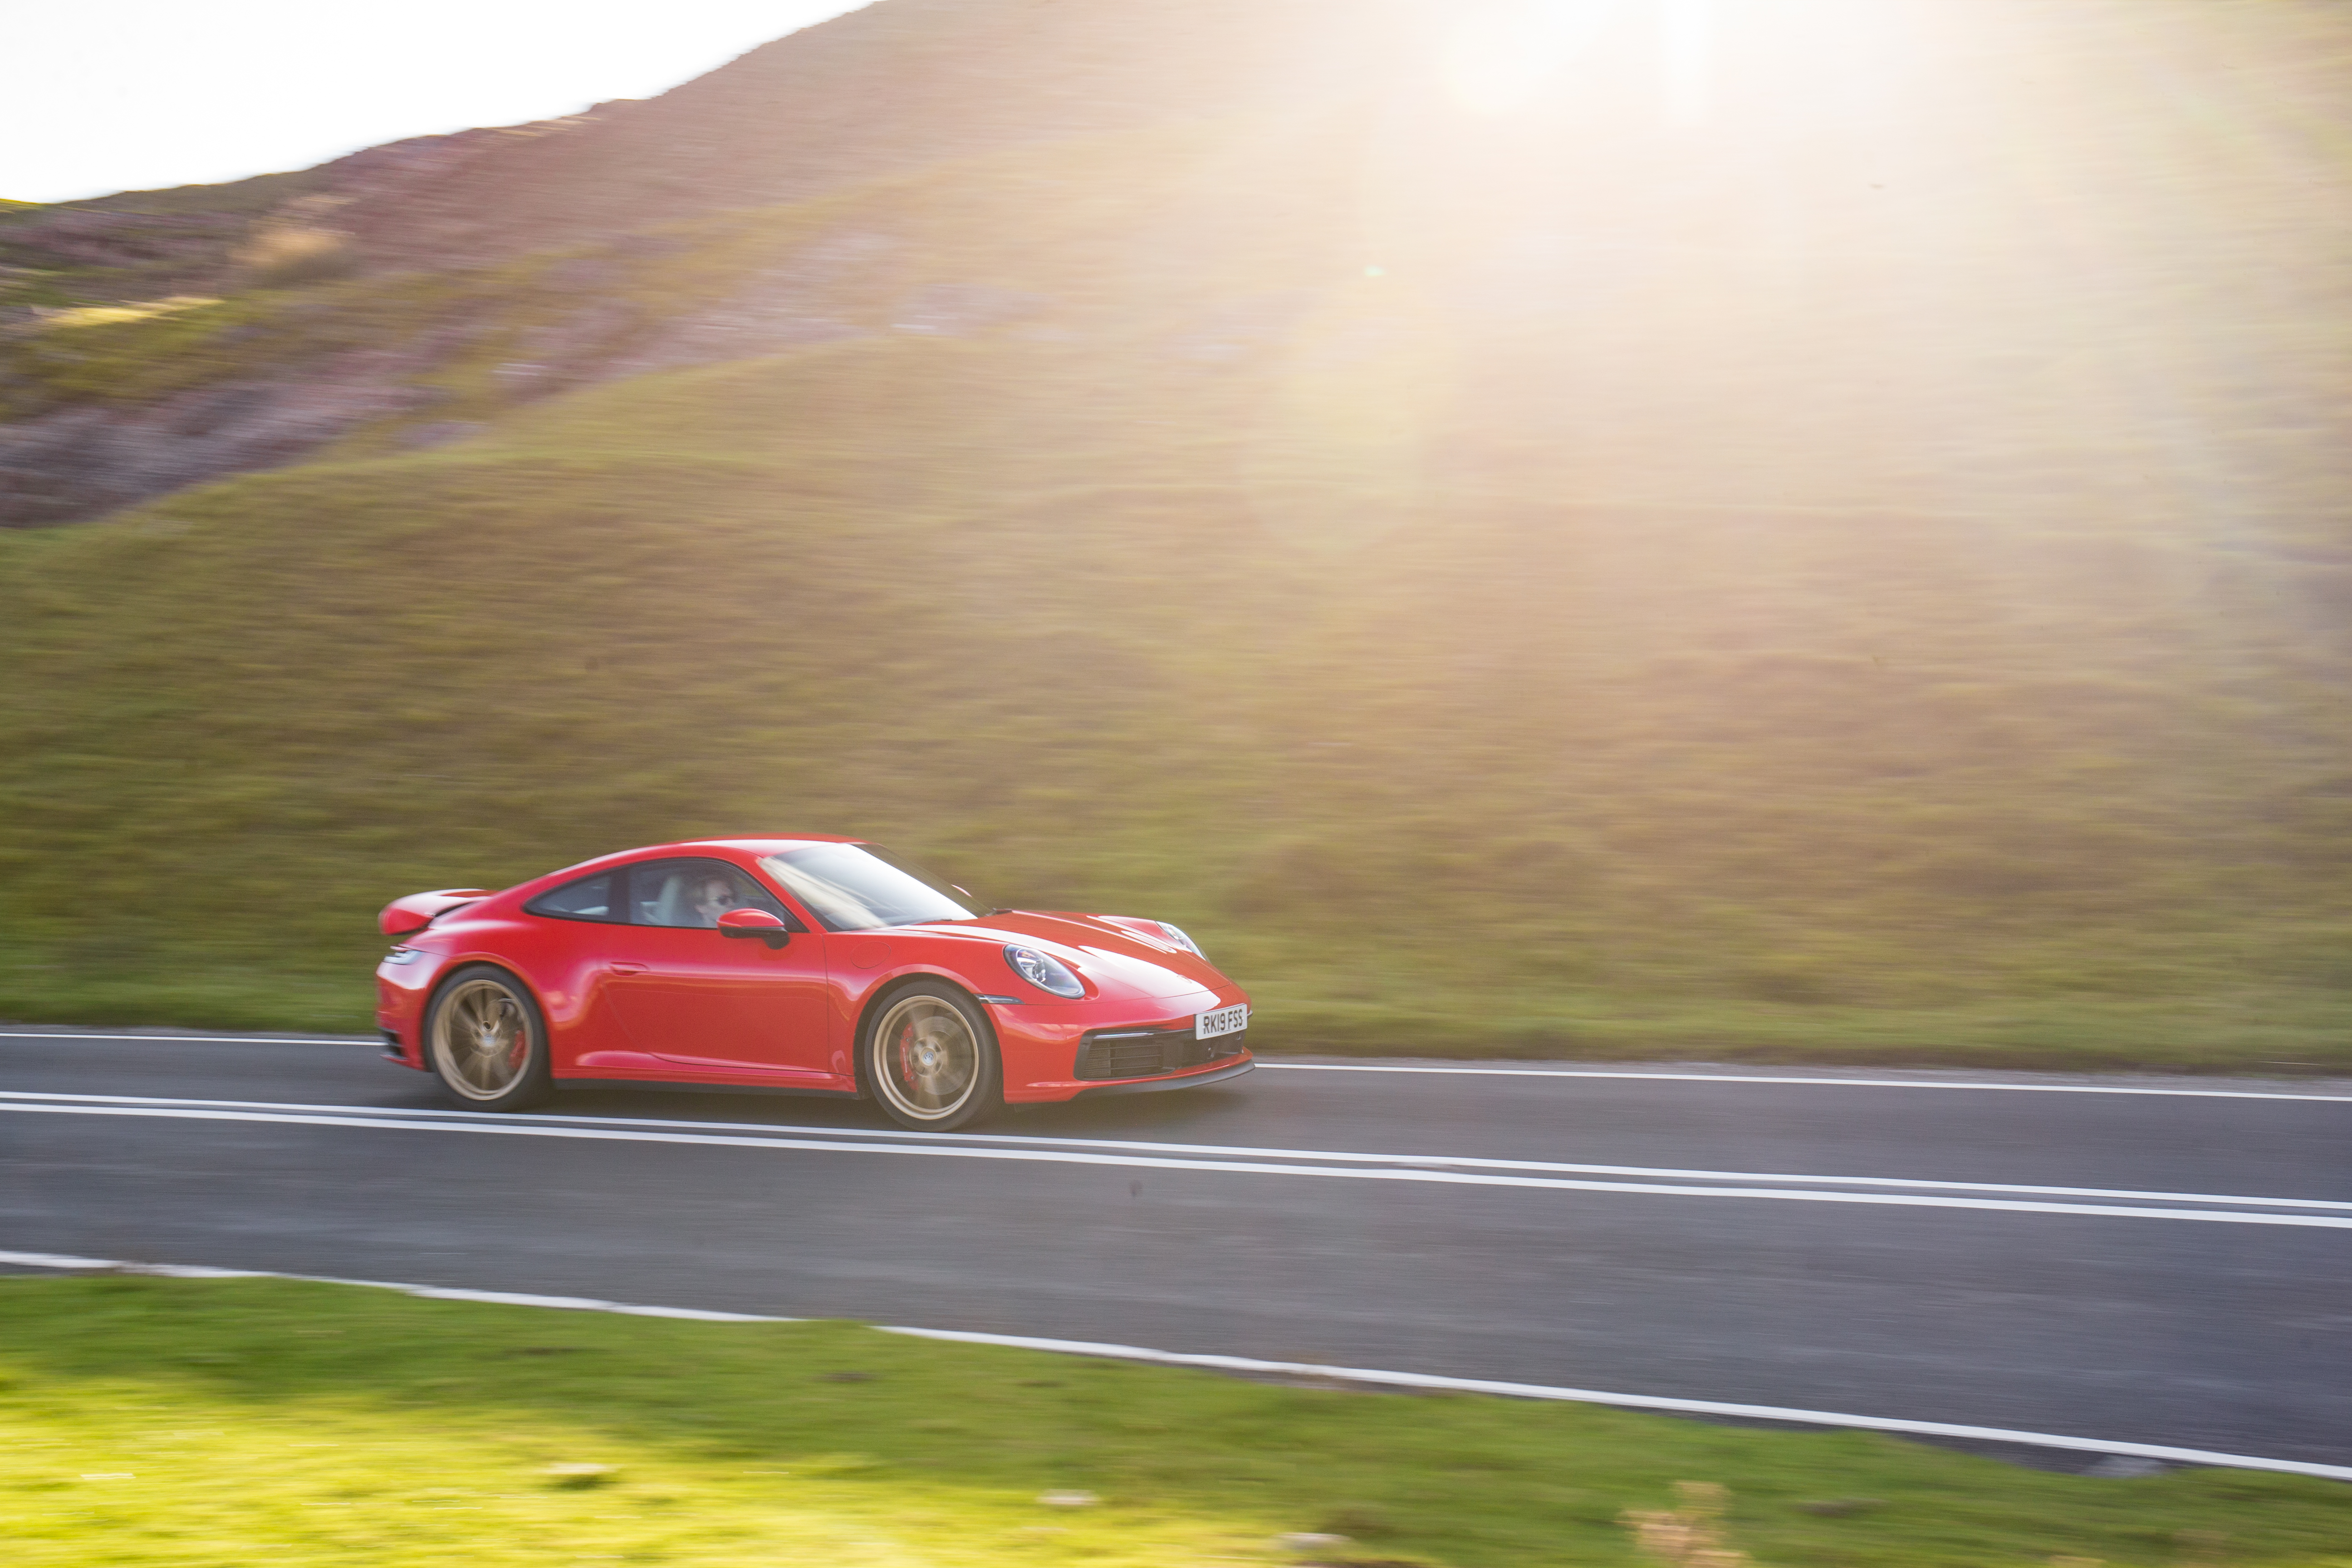 The Porsche comes alive on twisty roads